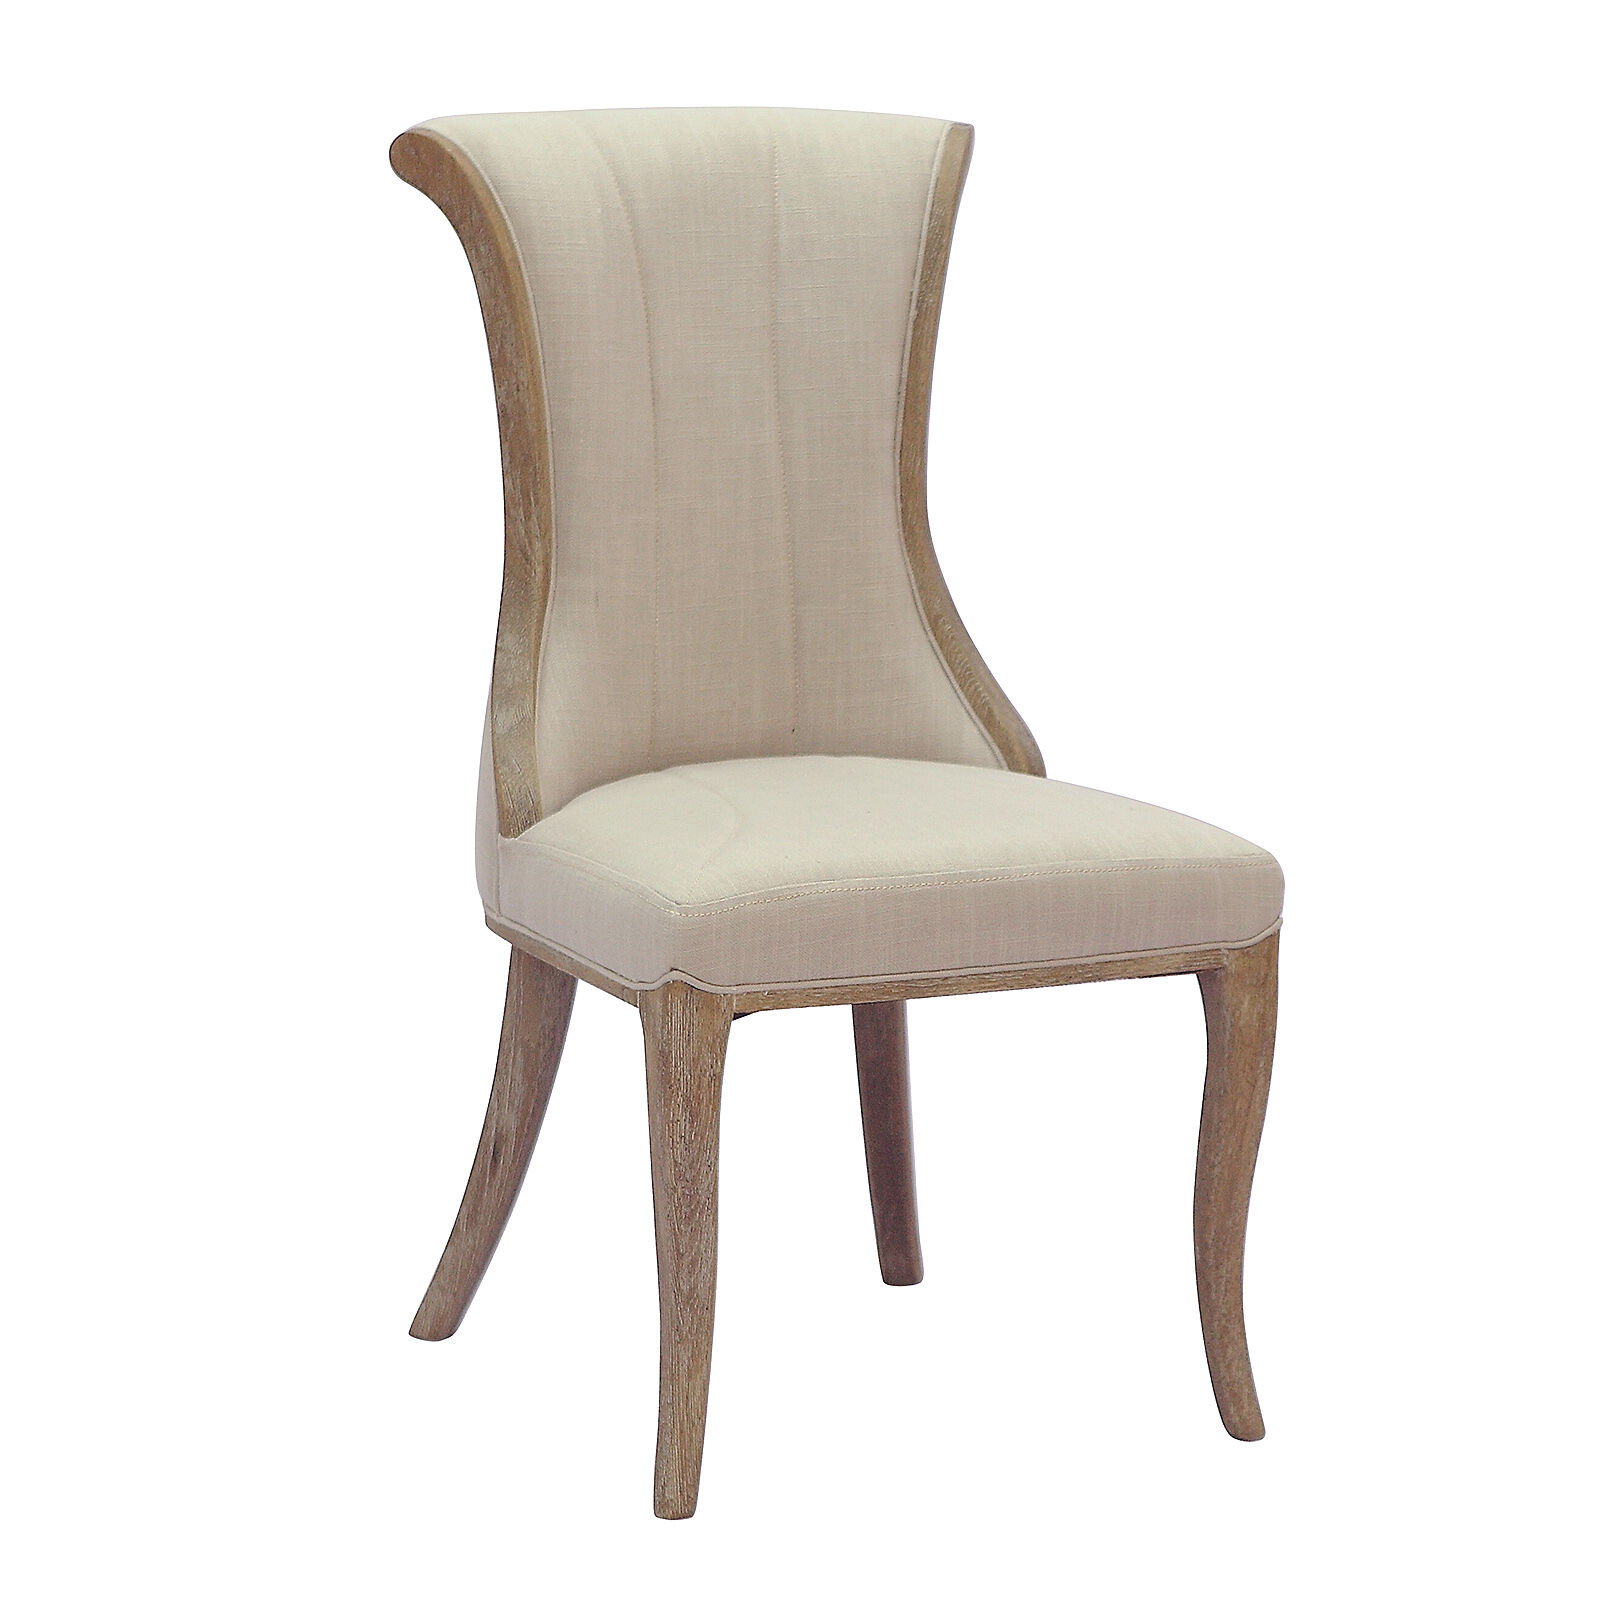 parson chairs faux fur uk linen chair at home zoom